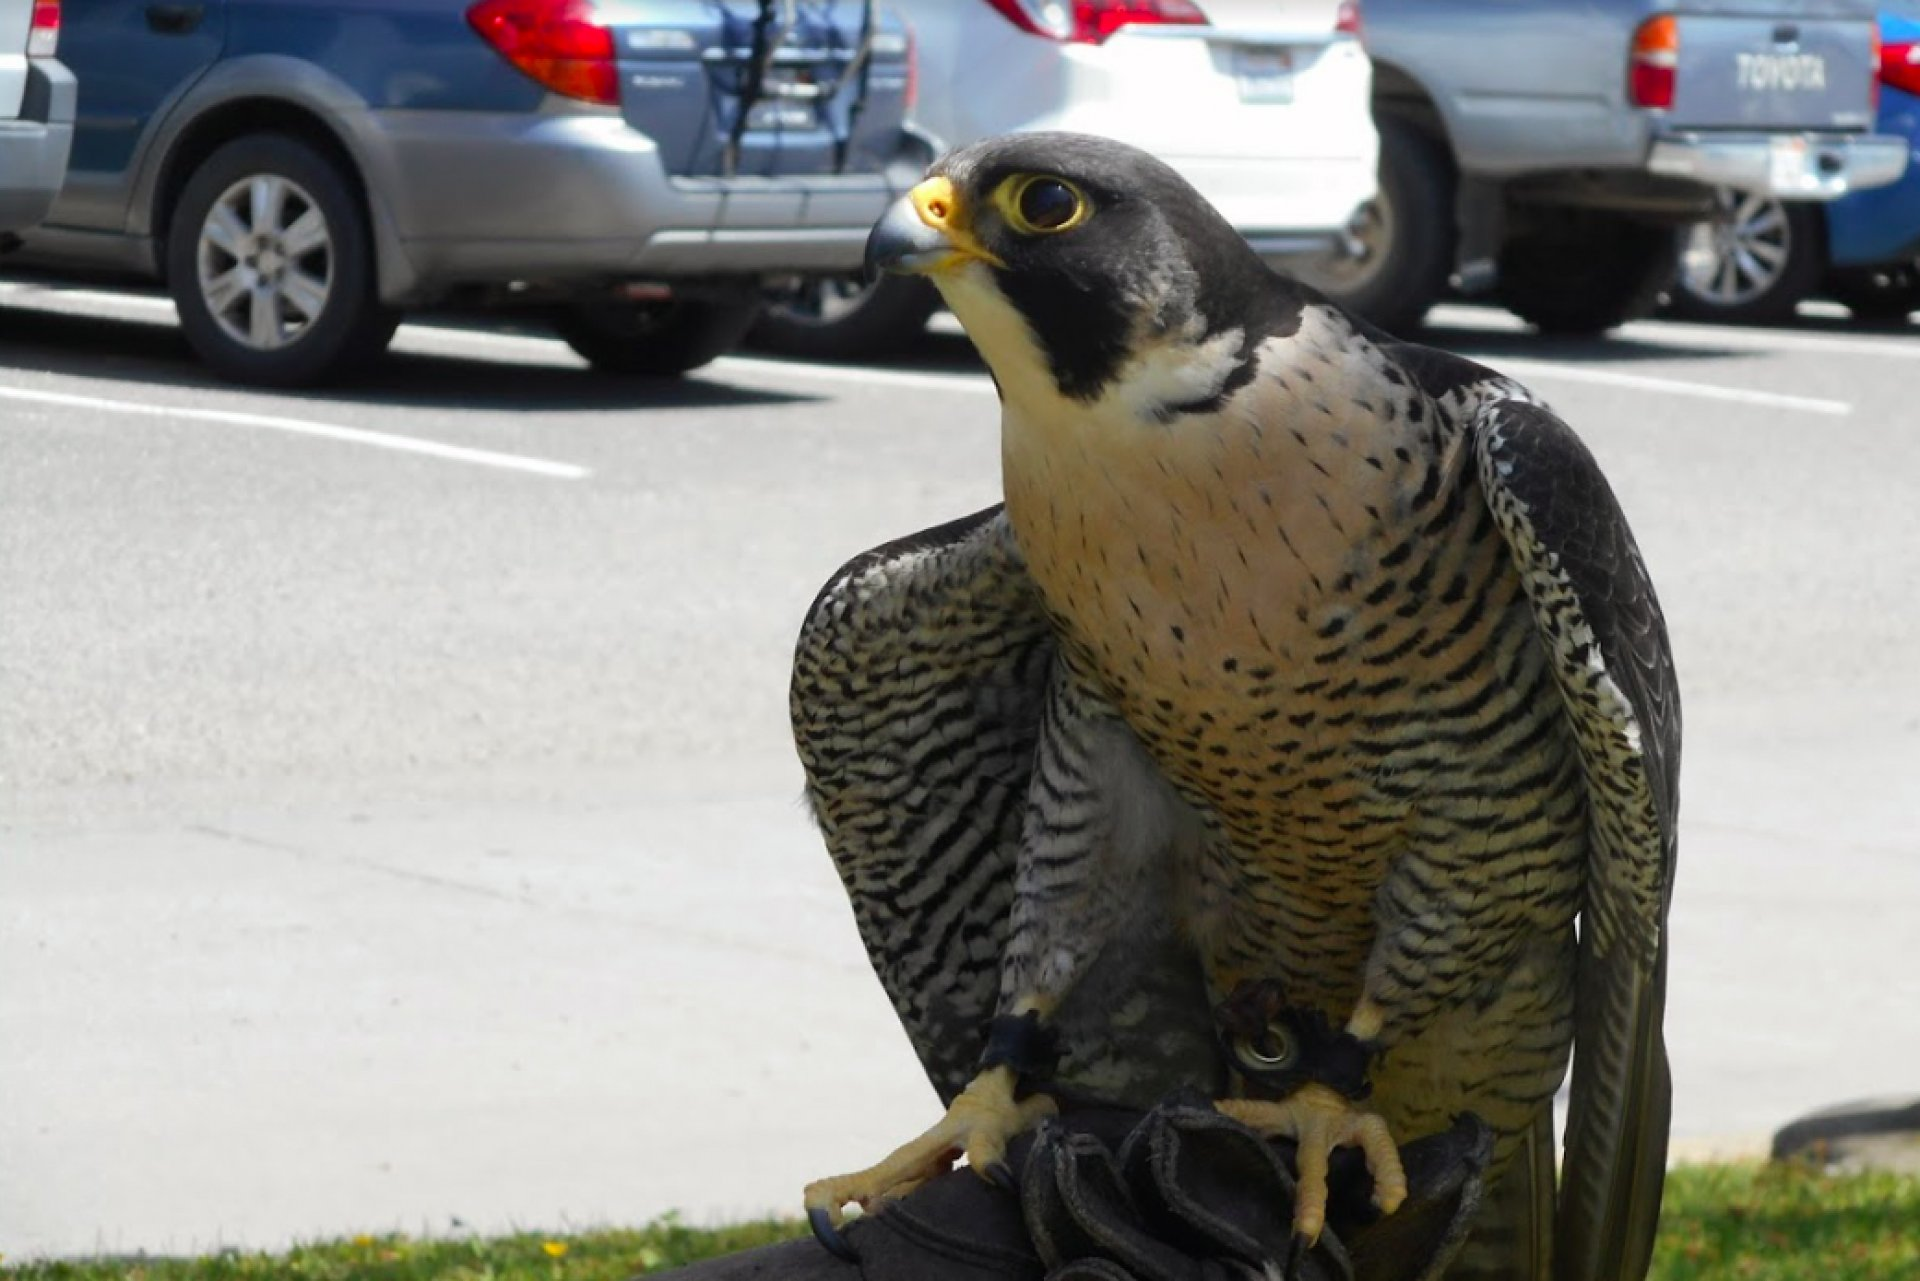 Carson, a peregrine falcon, is the fastest animal on Earth. Photo by Tyrone McDonald.